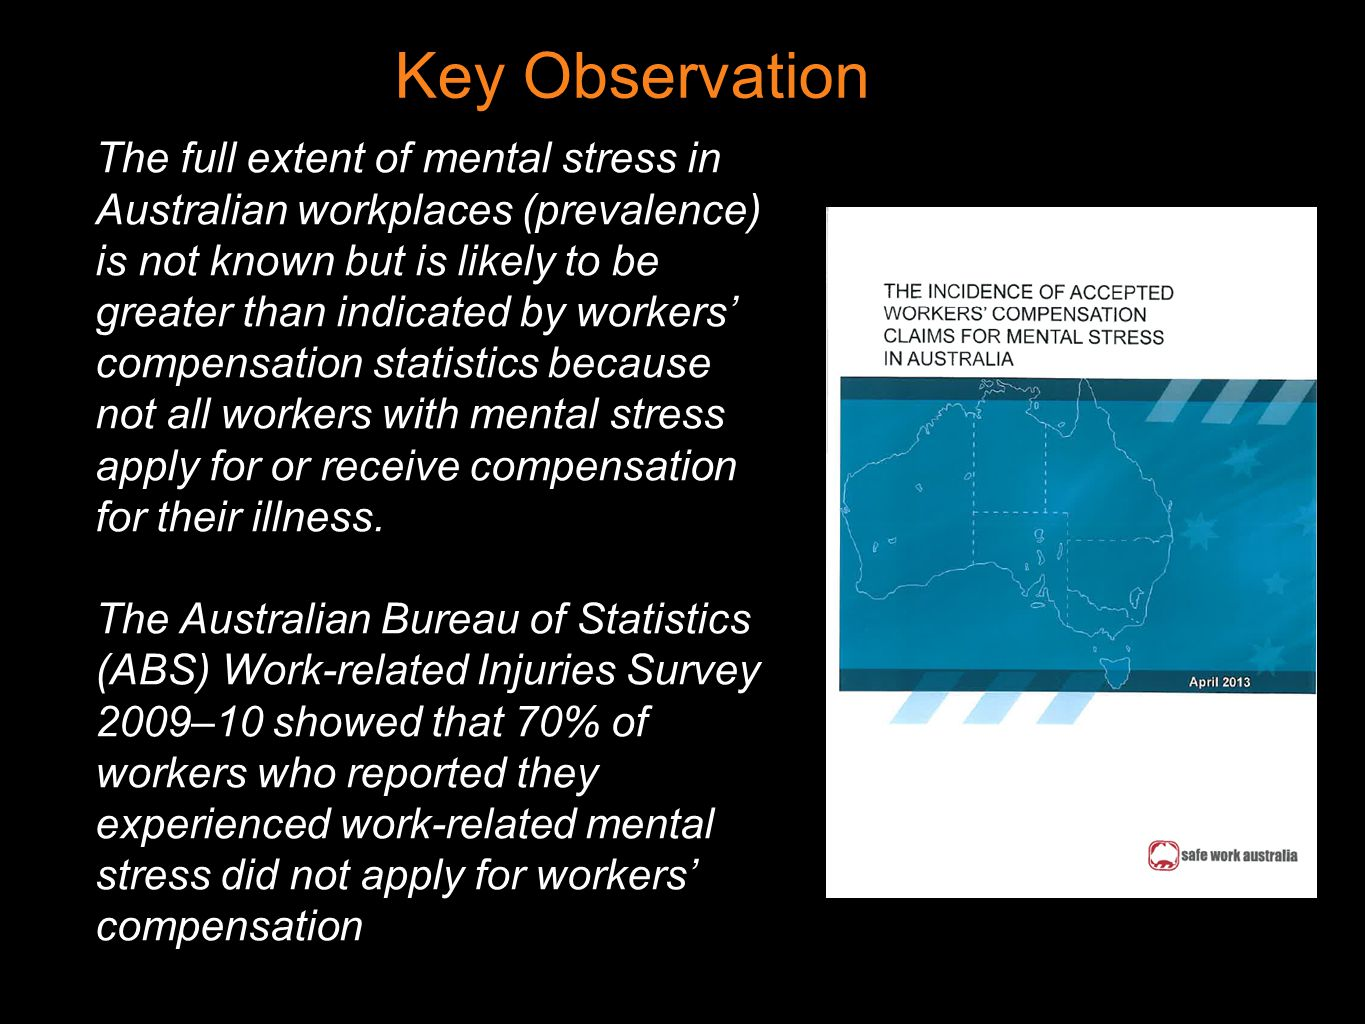 Key Observation The full extent of mental stress in Australian workplaces (prevalence) is not known but is likely to be greater than indicated by workers' compensation statistics because not all workers with mental stress apply for or receive compensation for their illness.